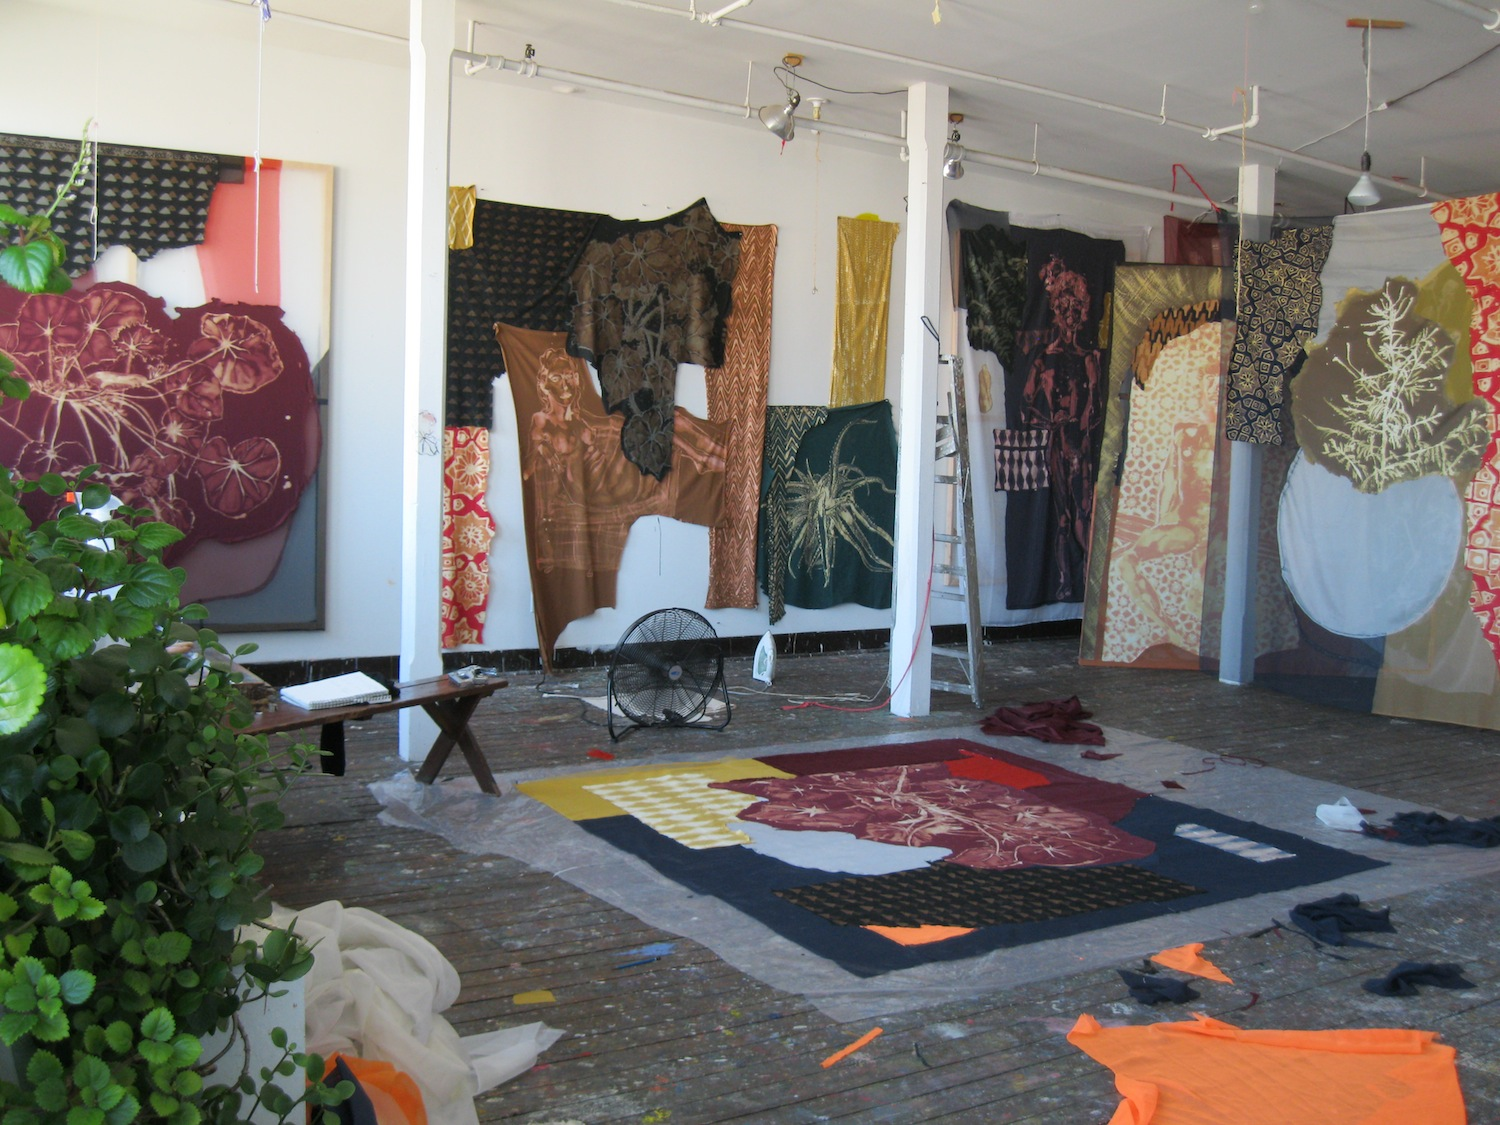 Lauren Luloff, Studio interior, Brooklyn, NY, image courtesy of the artist, 2014